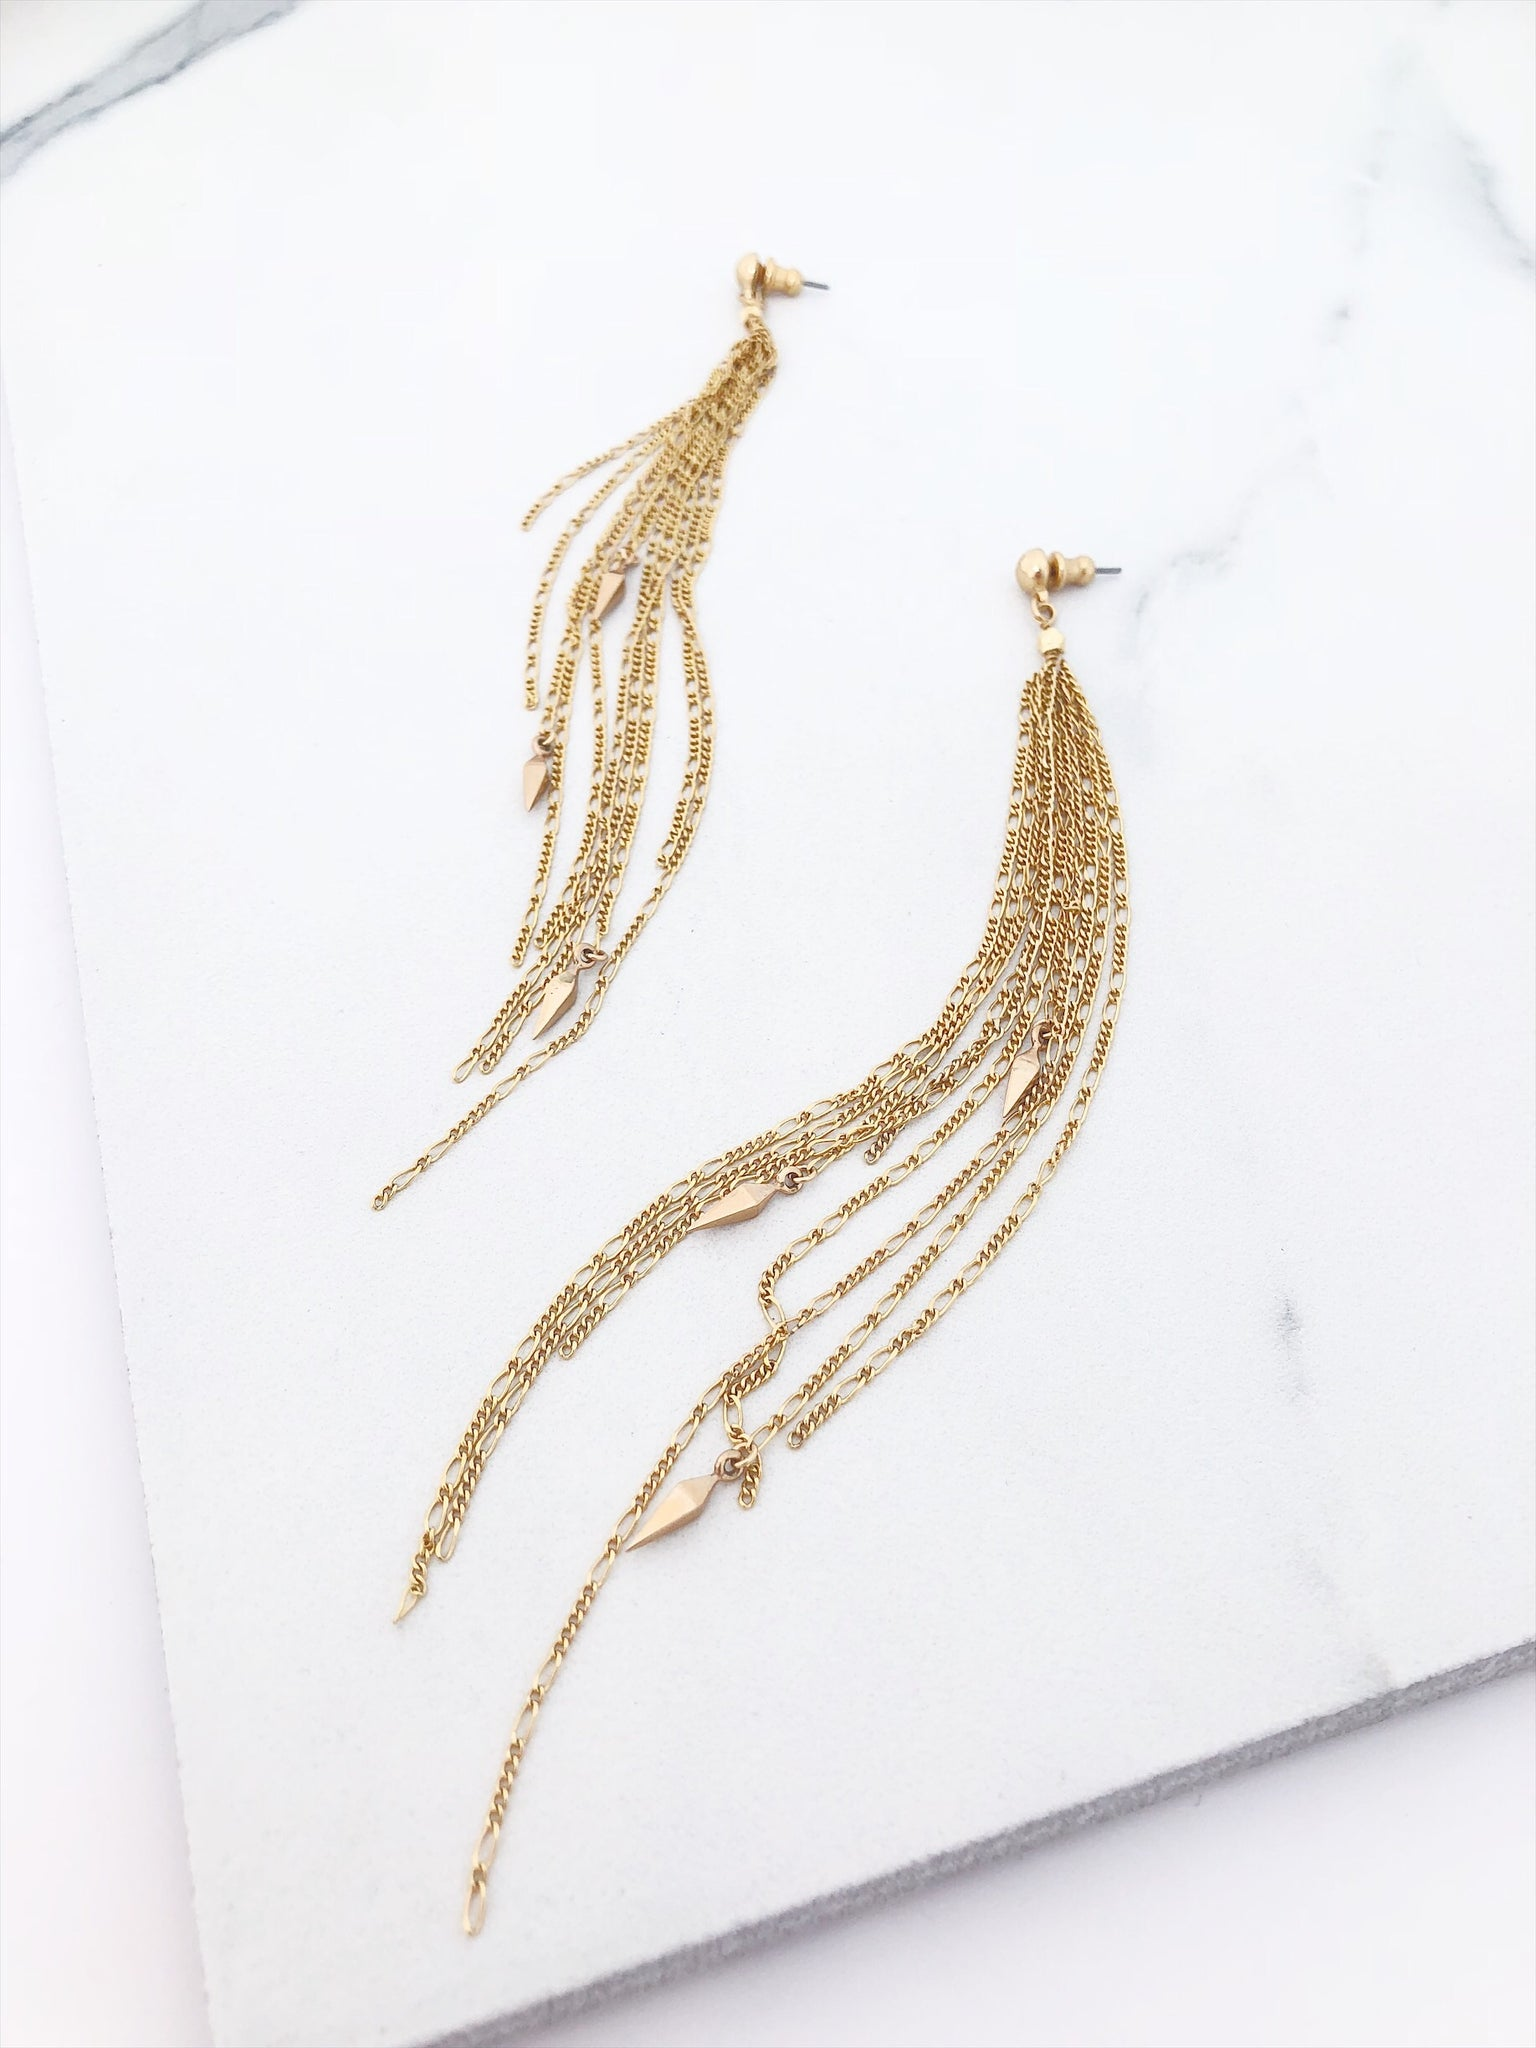 Finial Waterfall Earrings